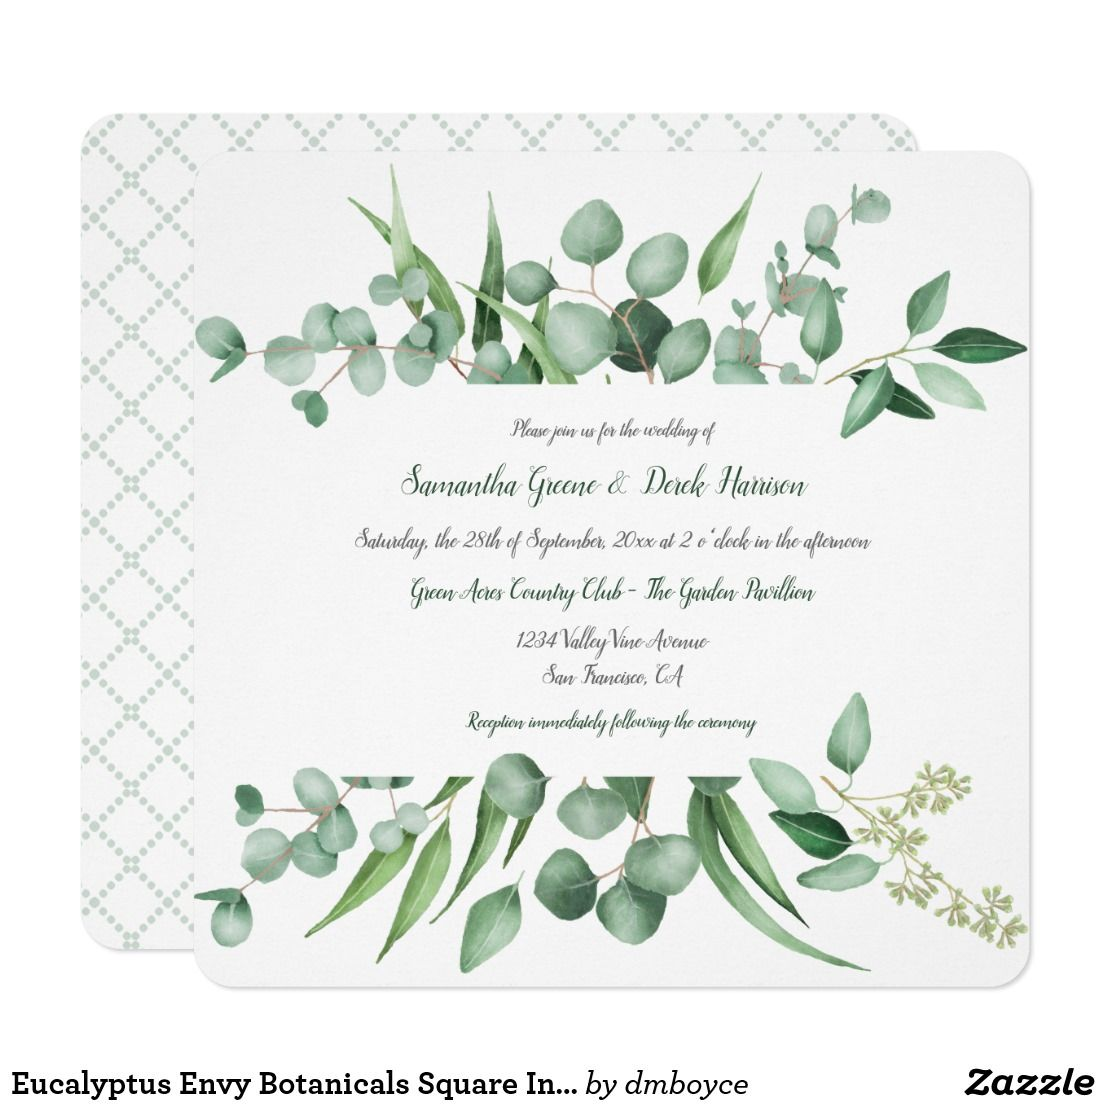 Eucalyptus Envy Botanicals Square Invitations Watercolor Wedding